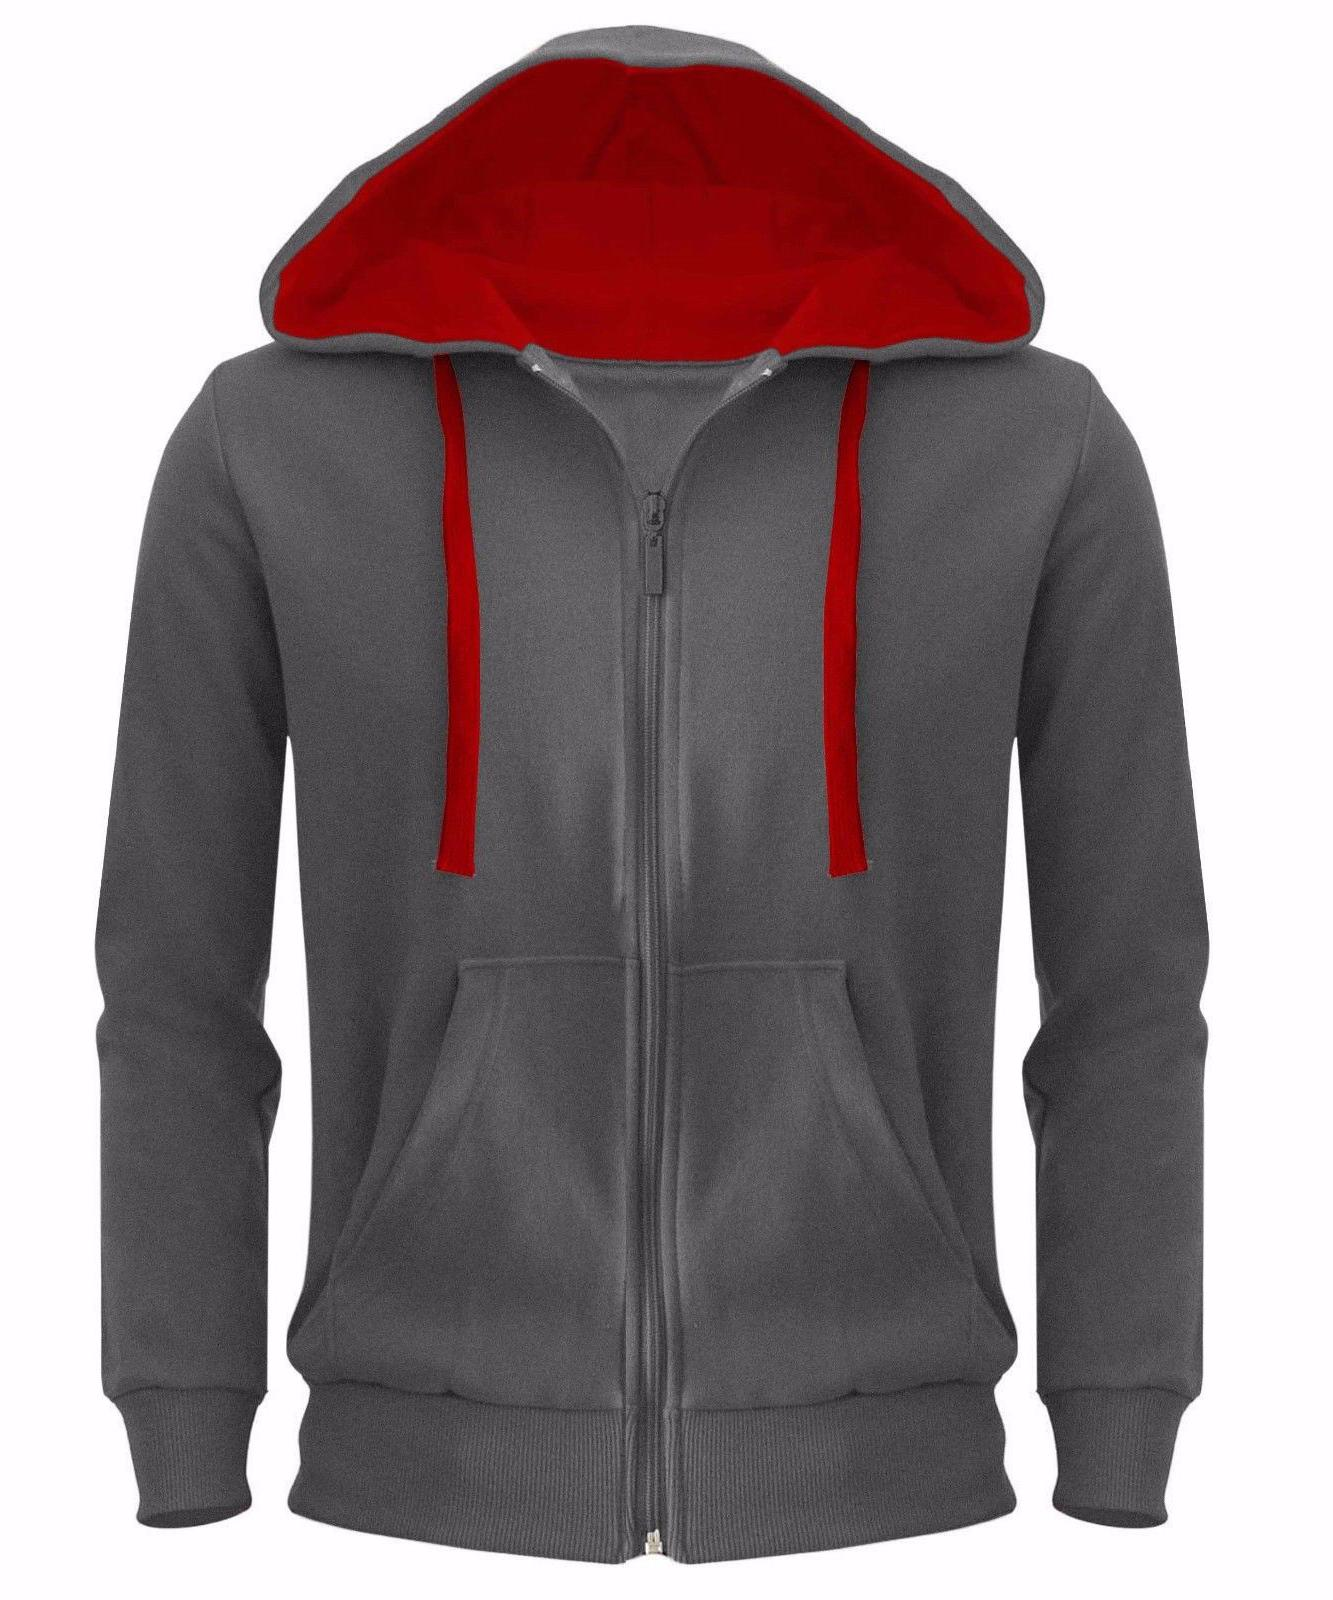 Mens Plain Zipper Jacket Sweatshirt Top Hoody